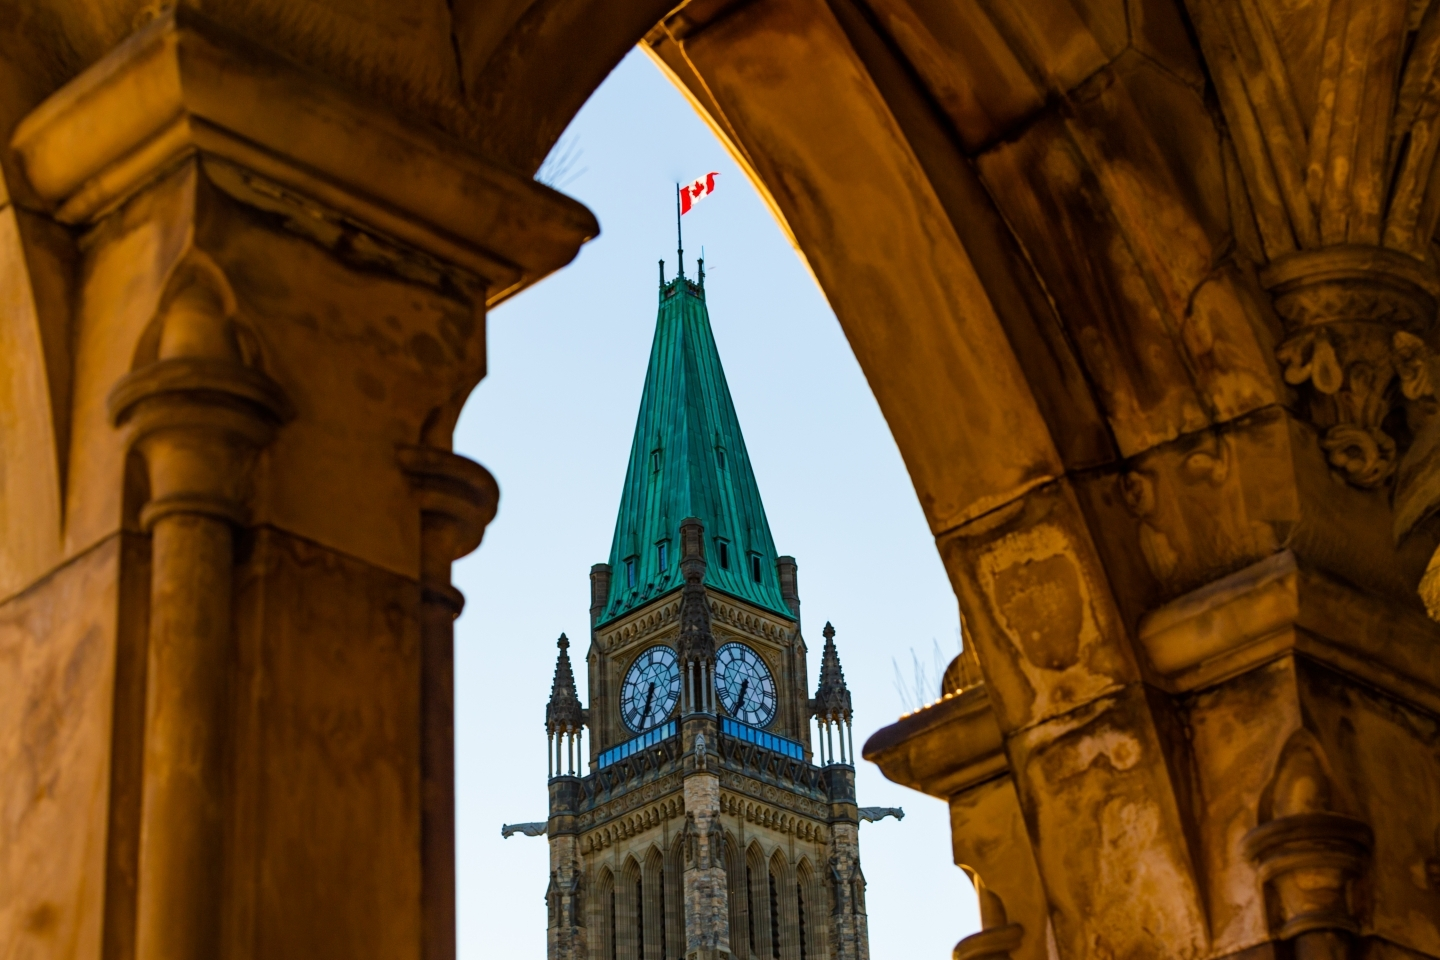 Peace Tower at the Parliament of Canada in Ottawa Framed in Arch. (Shutterstock)